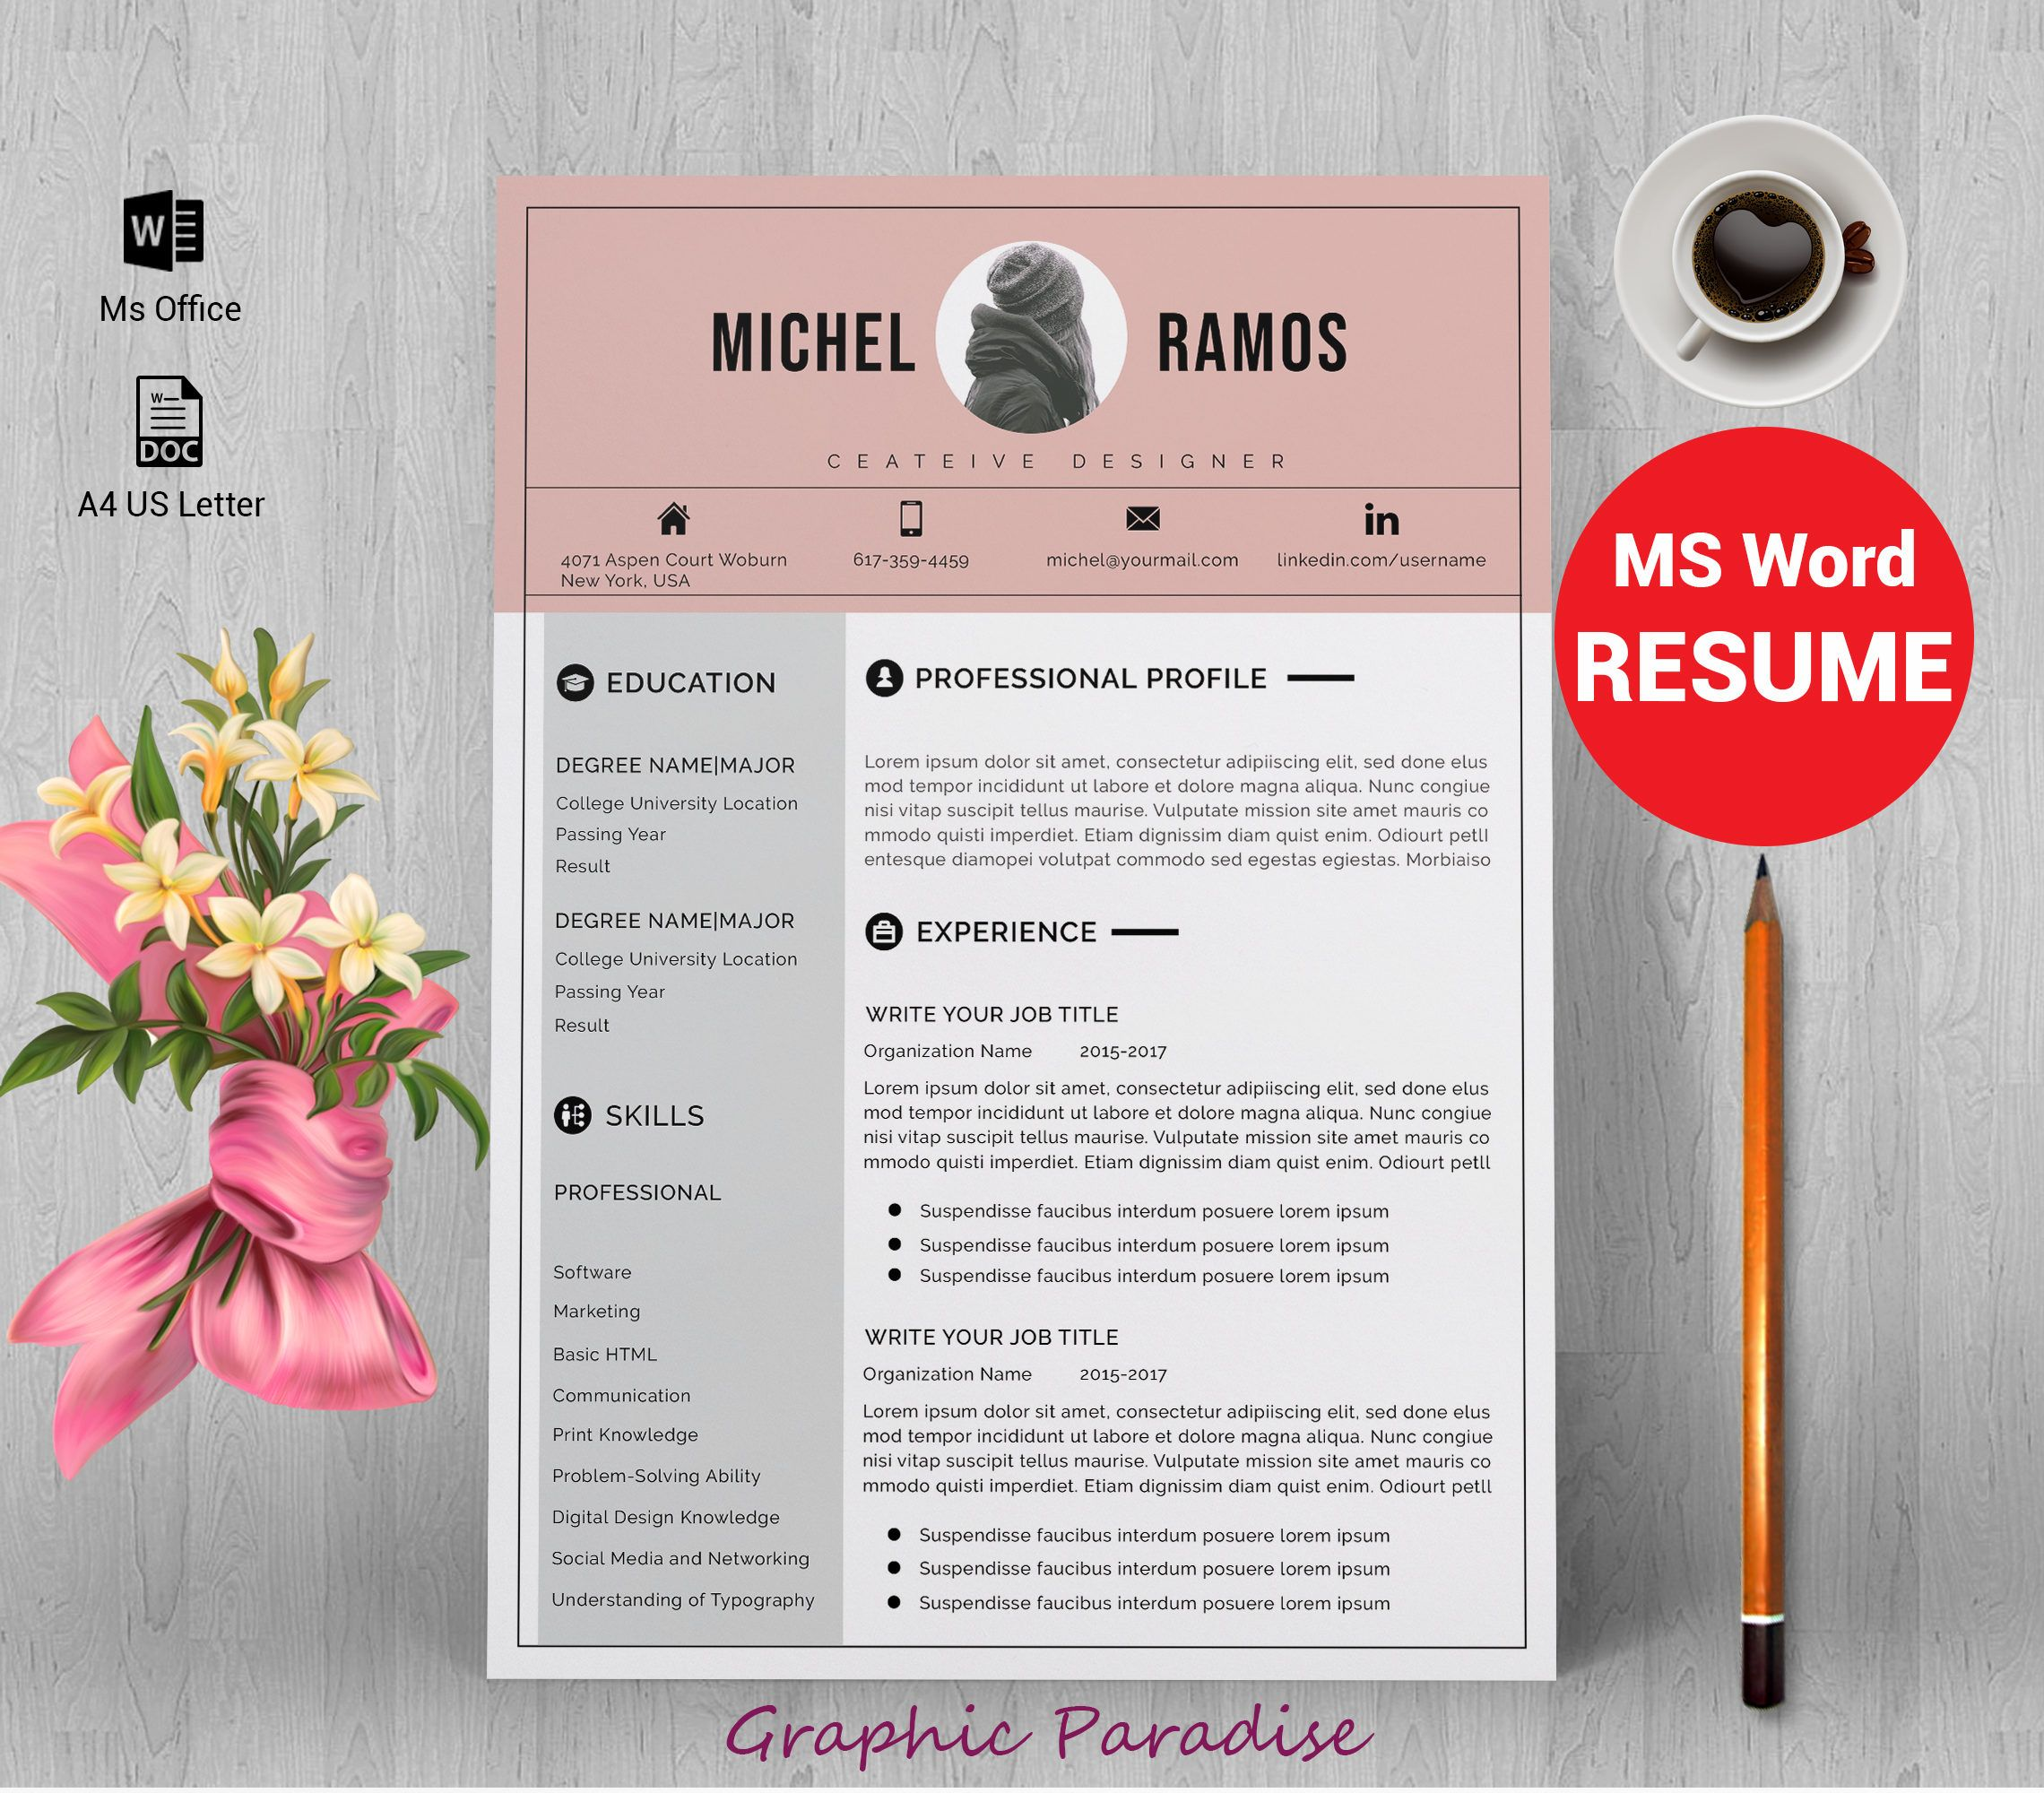 Professional resume template instant download| MS word resume ...